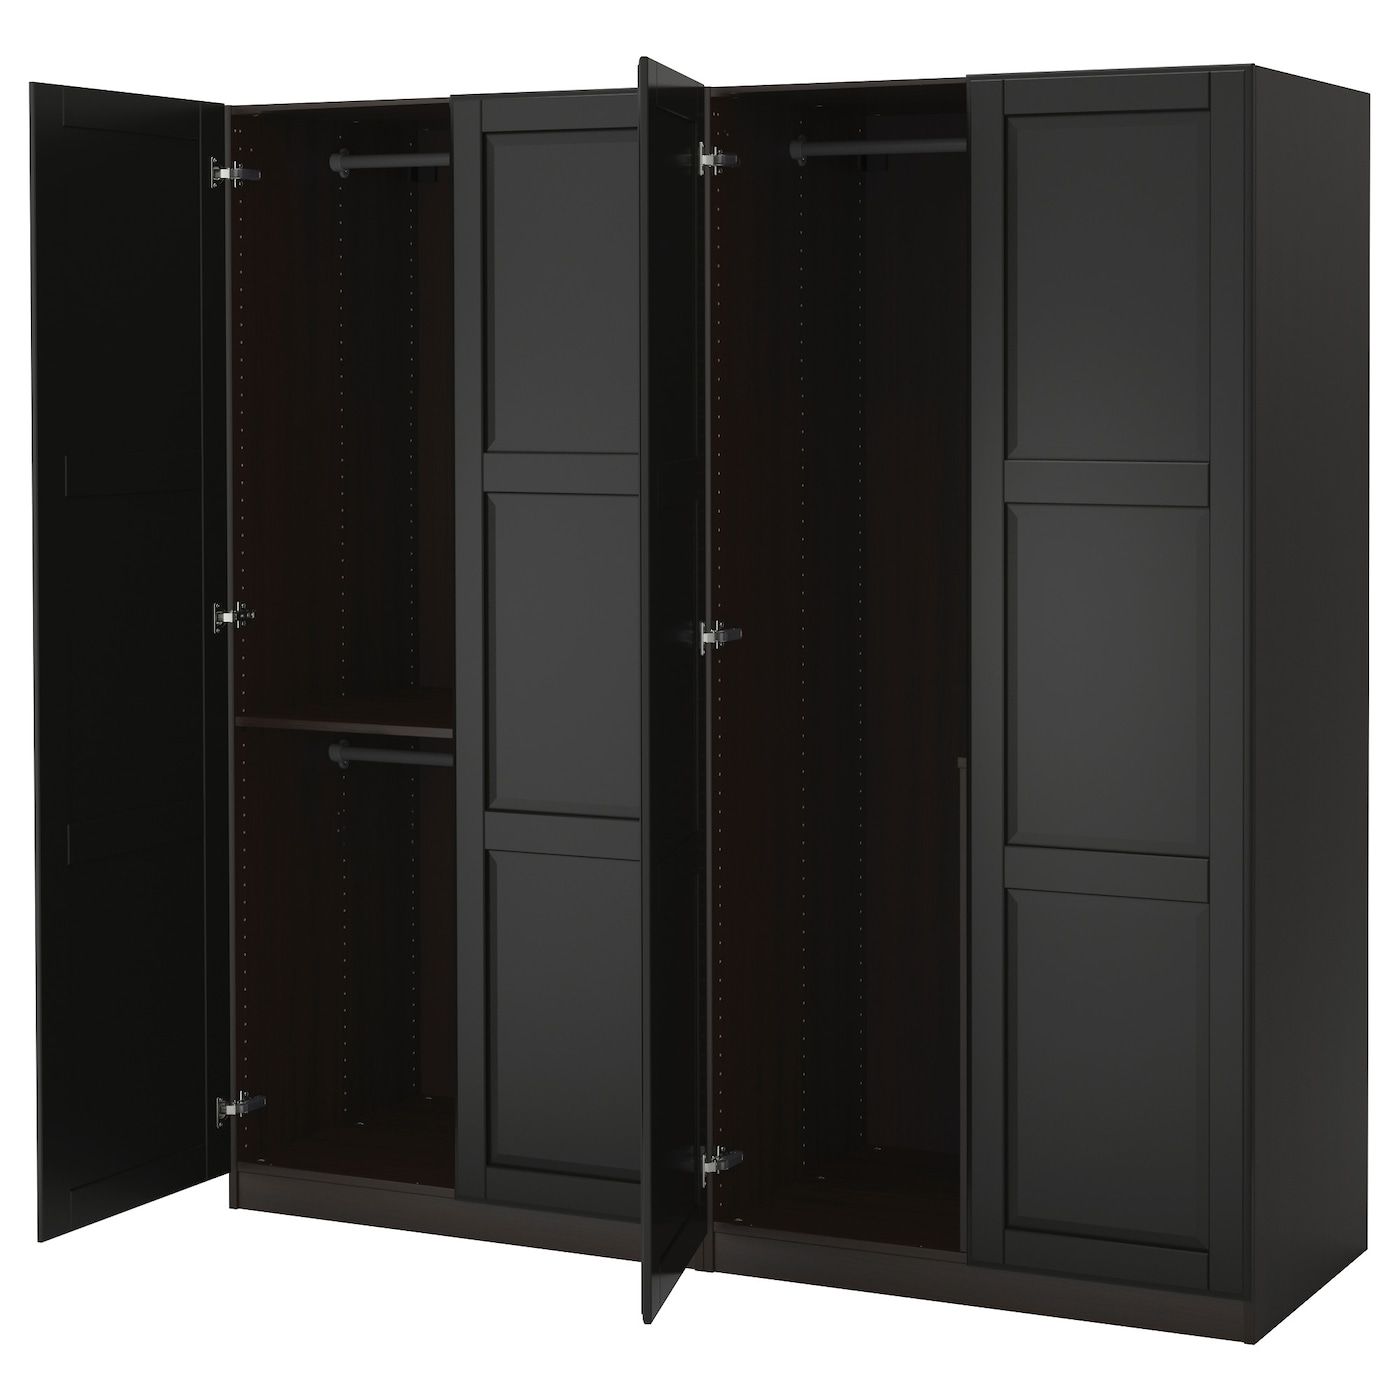 Wardrobe Combinations With Doors Ikea # Ikea Meuble Bas Tv